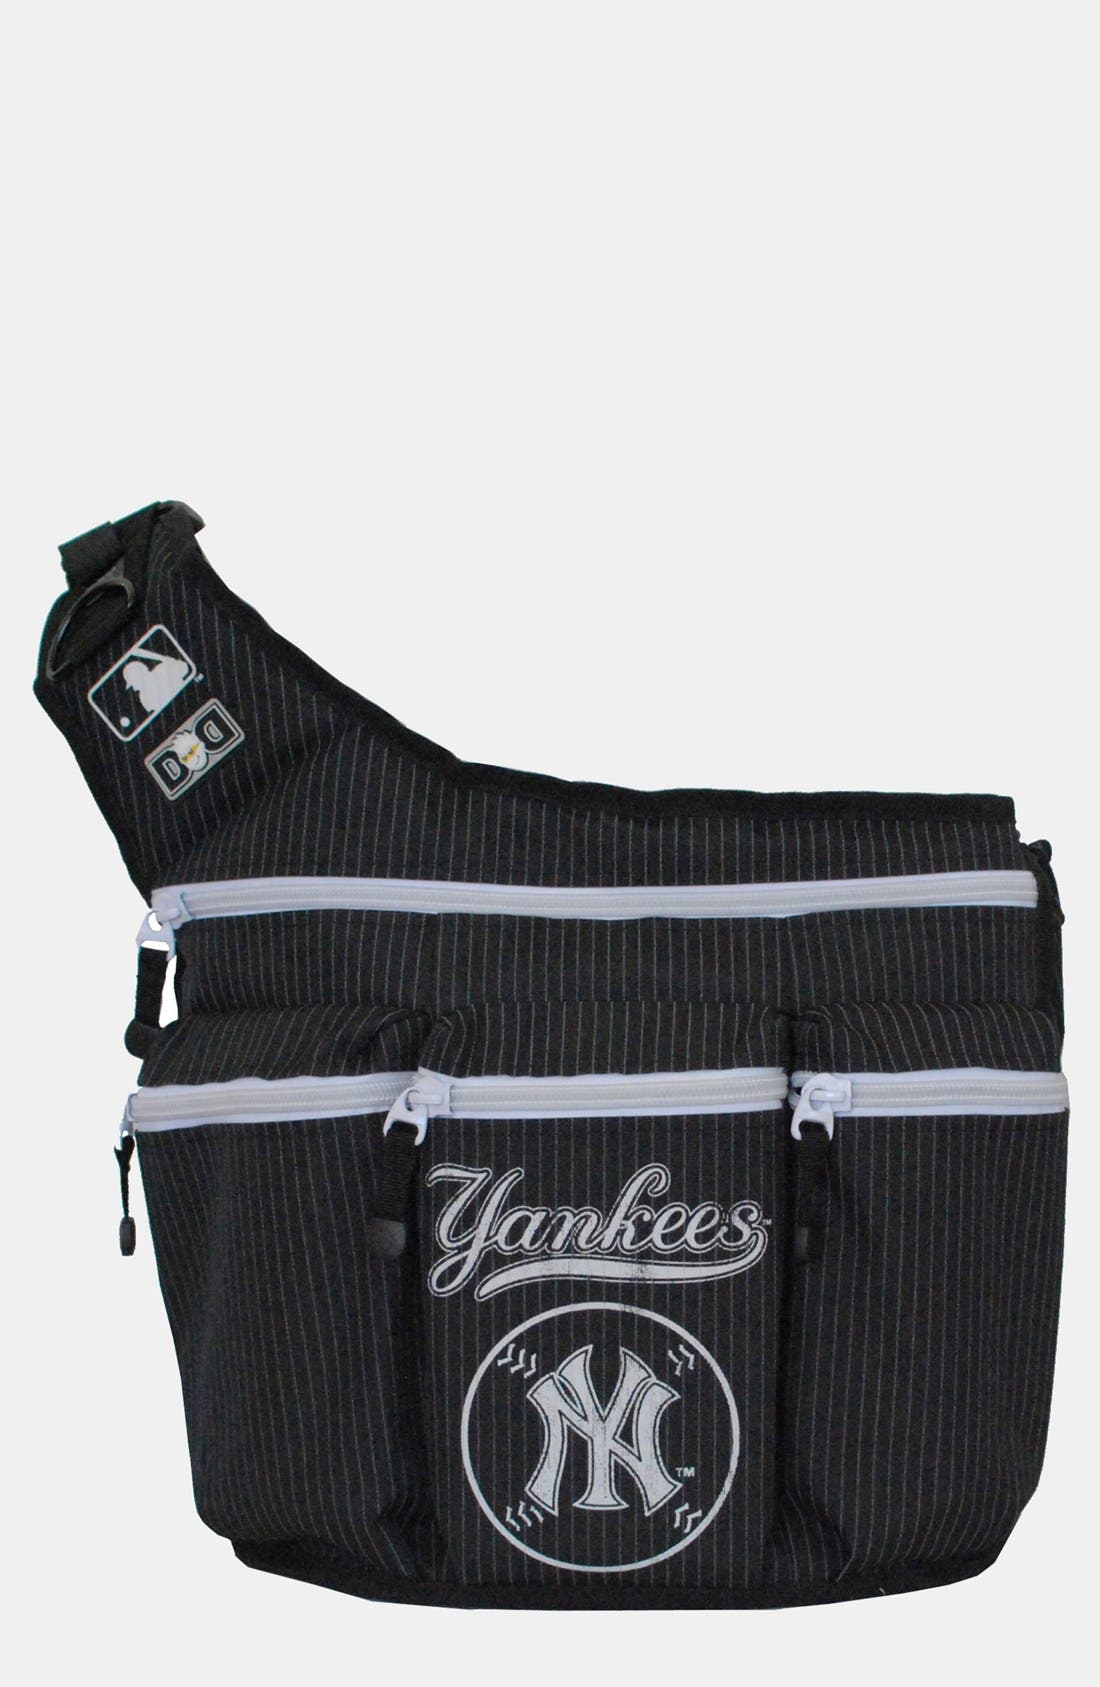 Alternate Image 1 Selected - Diaper Dude 'New York Yankees' Messenger Diaper Bag